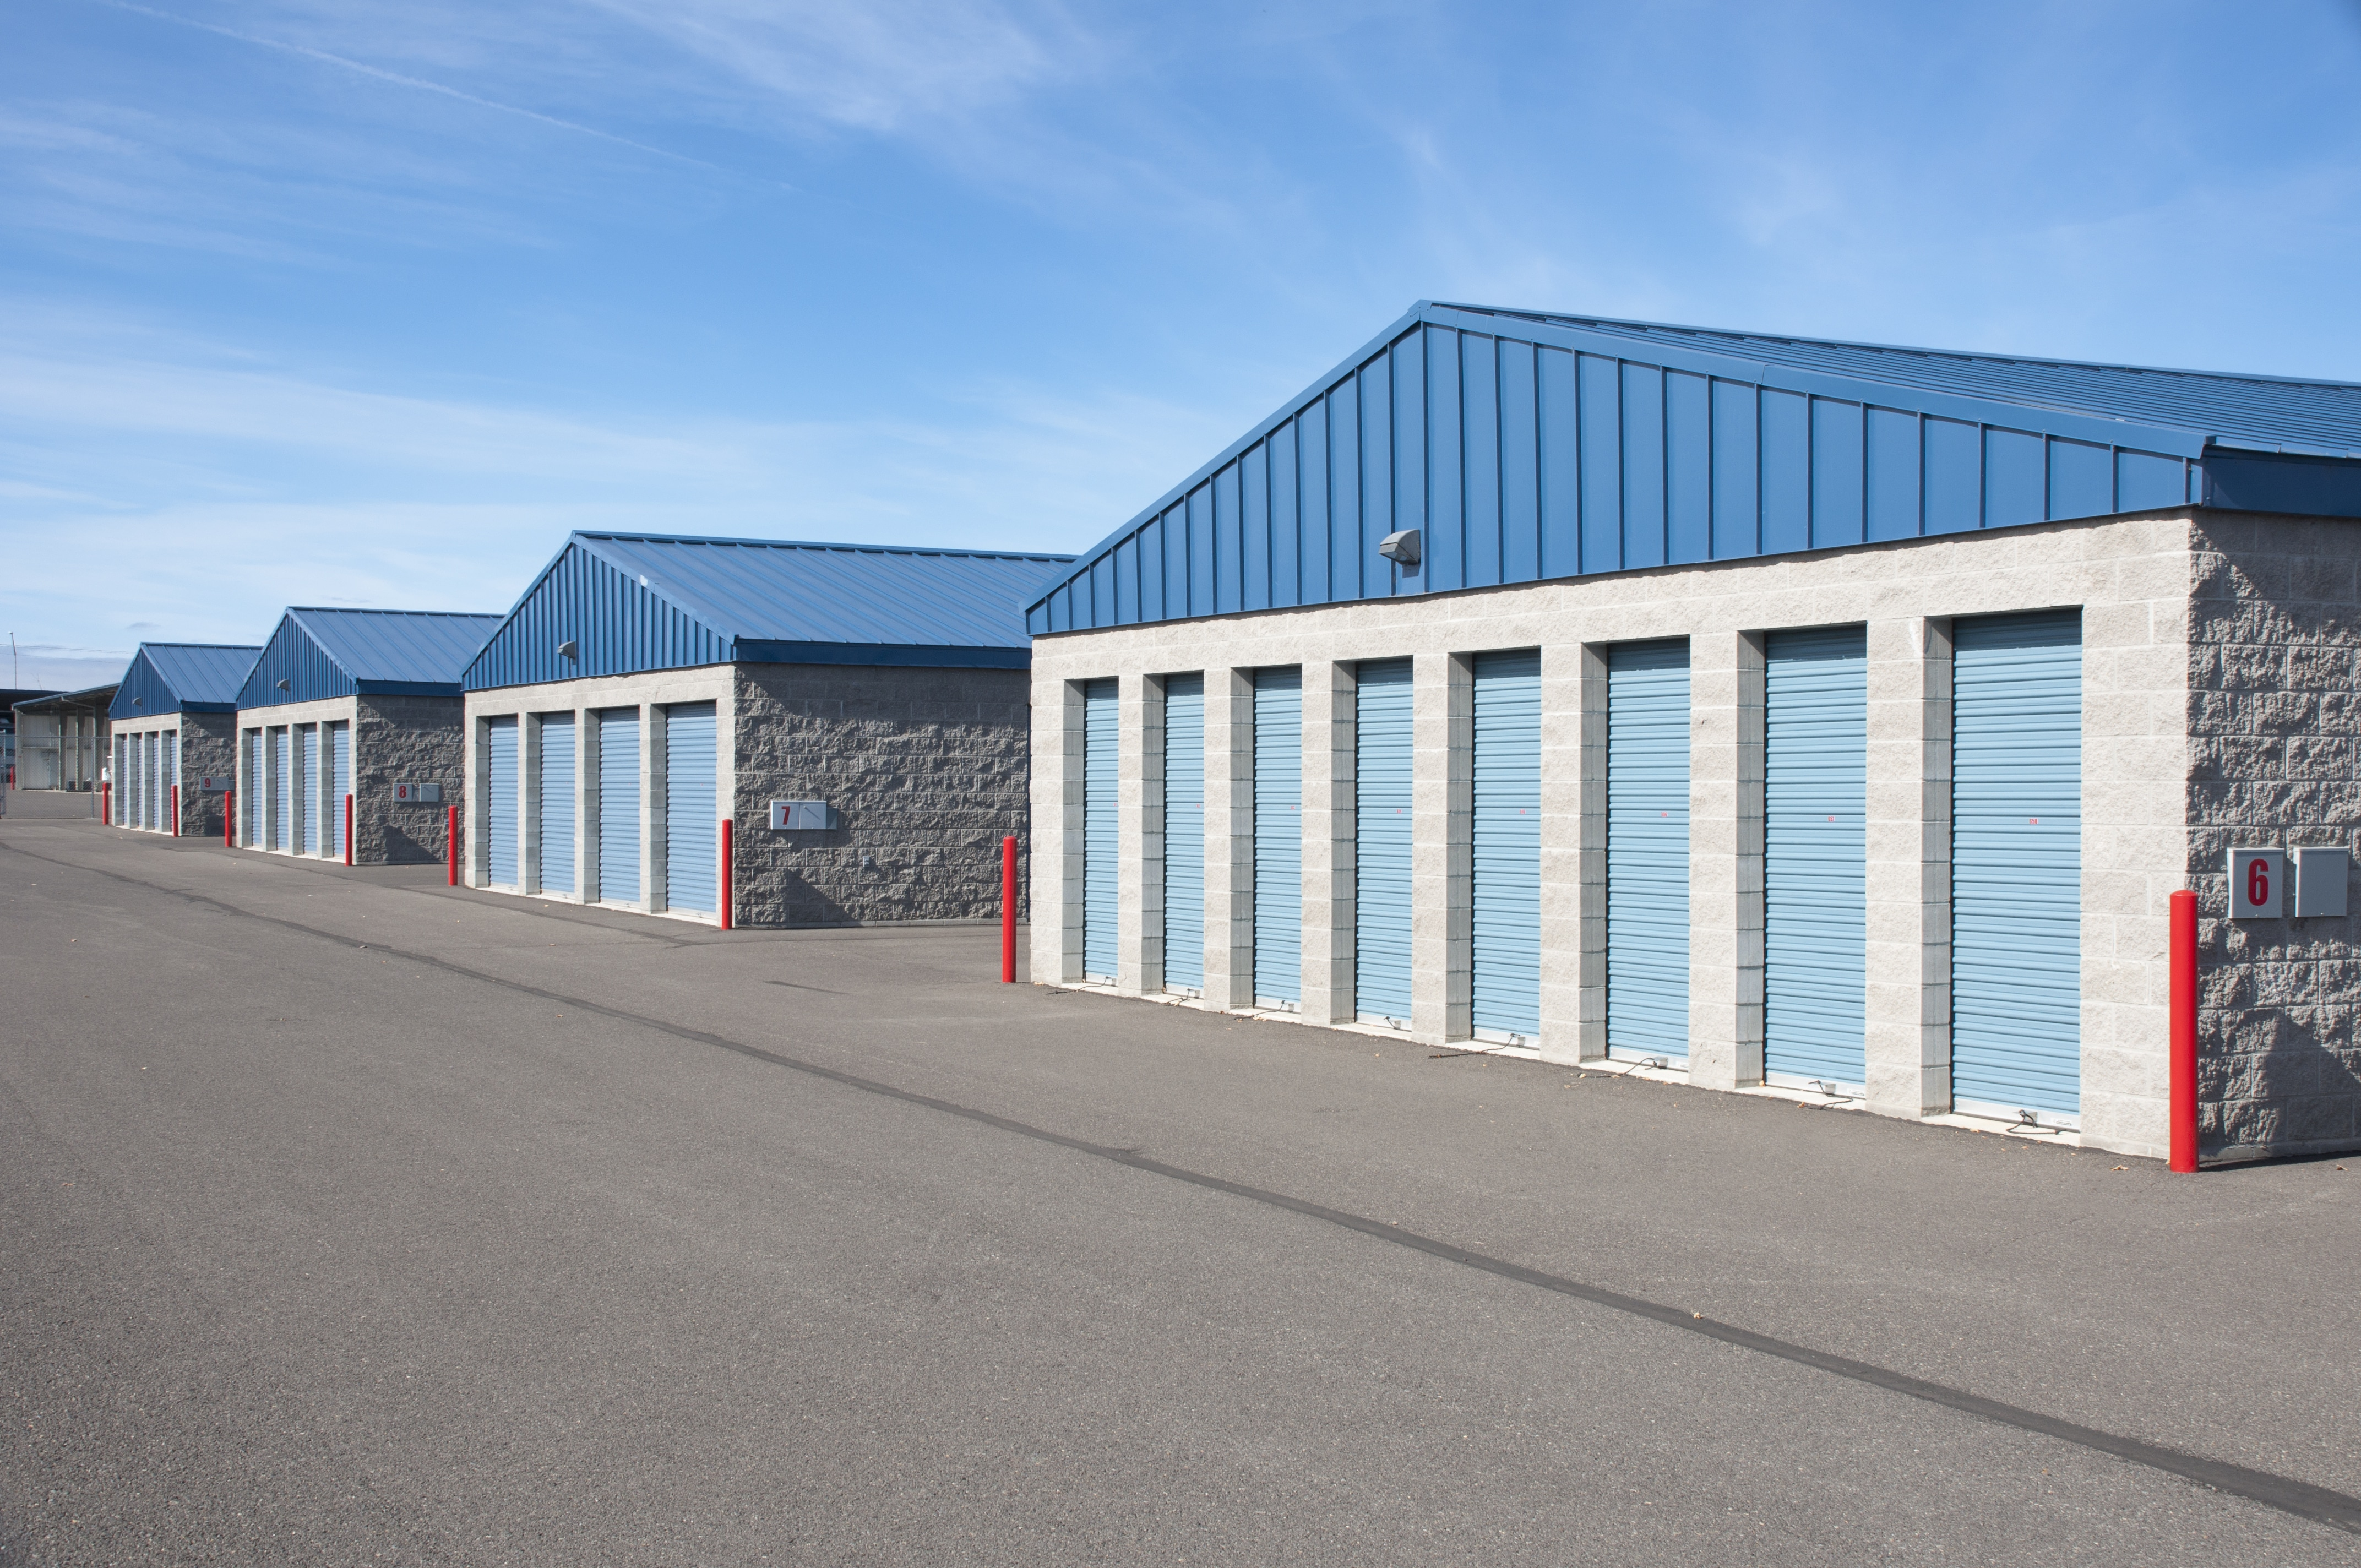 self storage facility with multiple ground level units